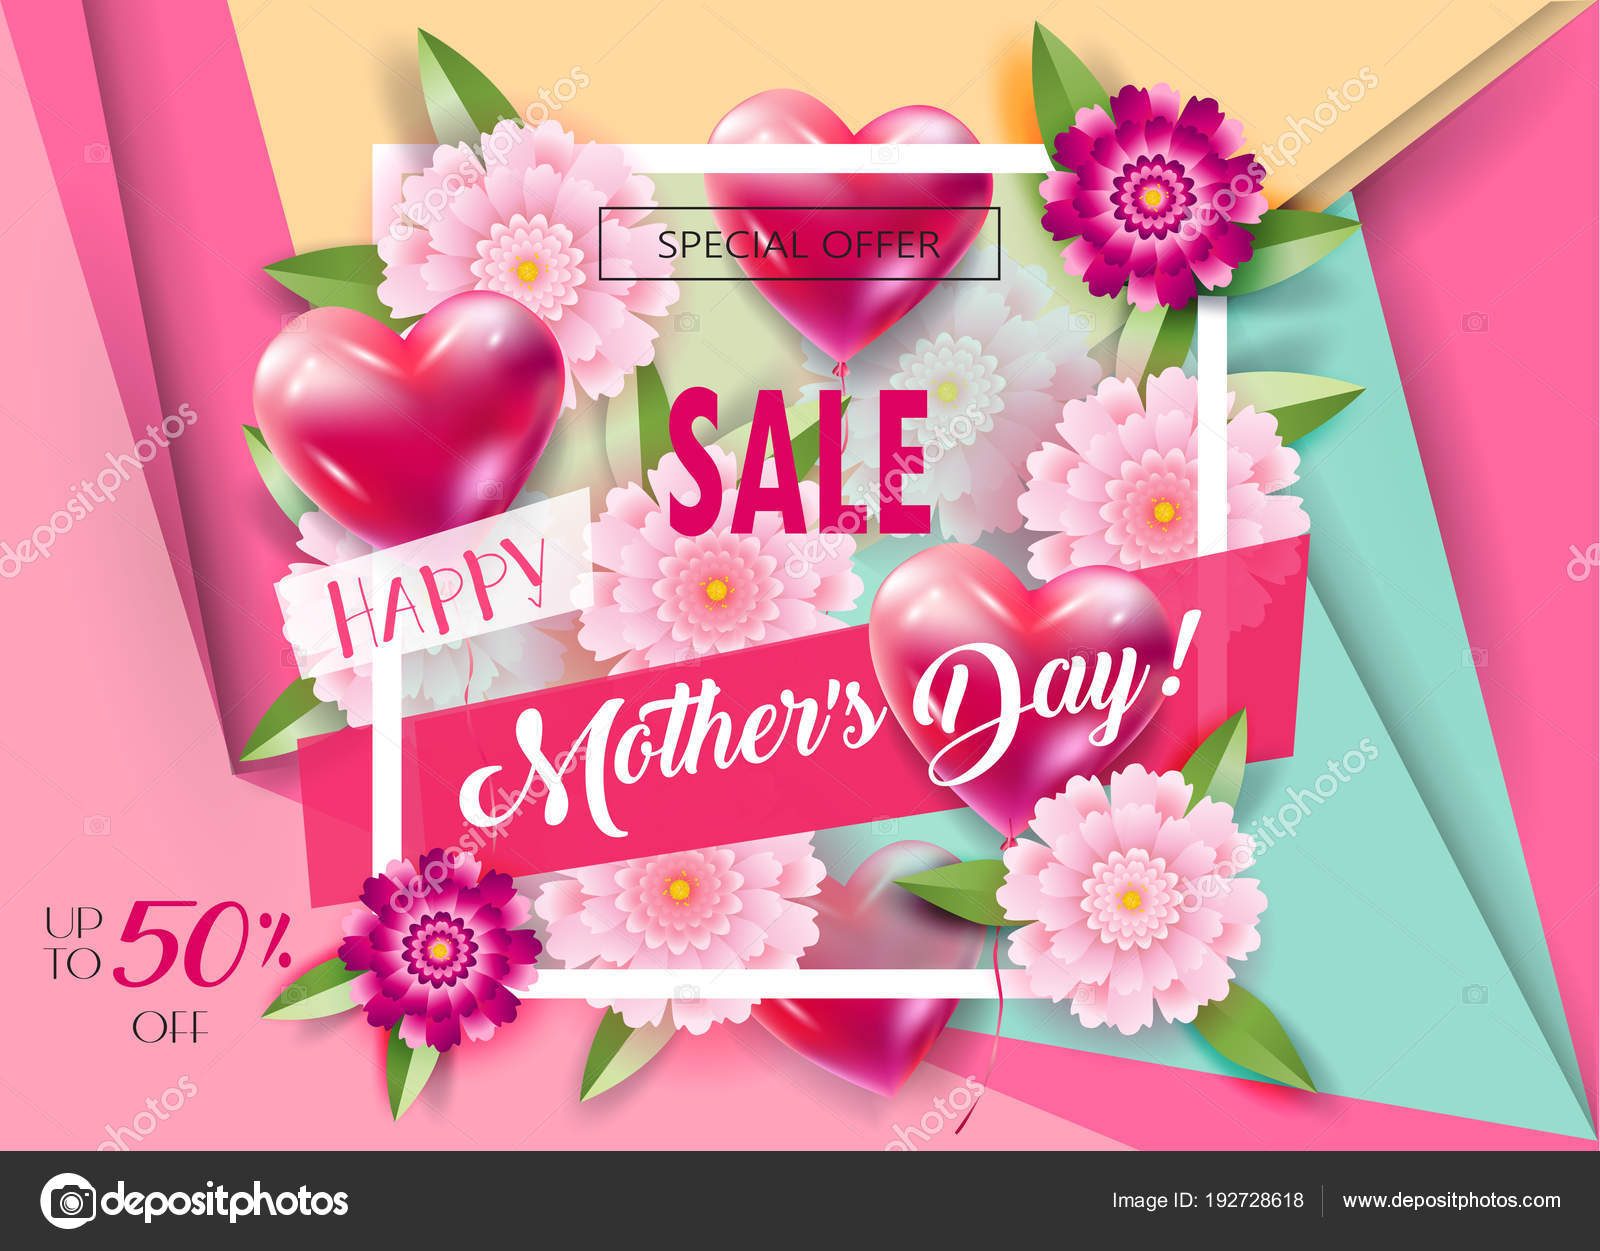 Sale Banners Set Mother Day Gift Cards Tags Special Offer Stock Vector C Sofiartmedia Gmail Com 192728618